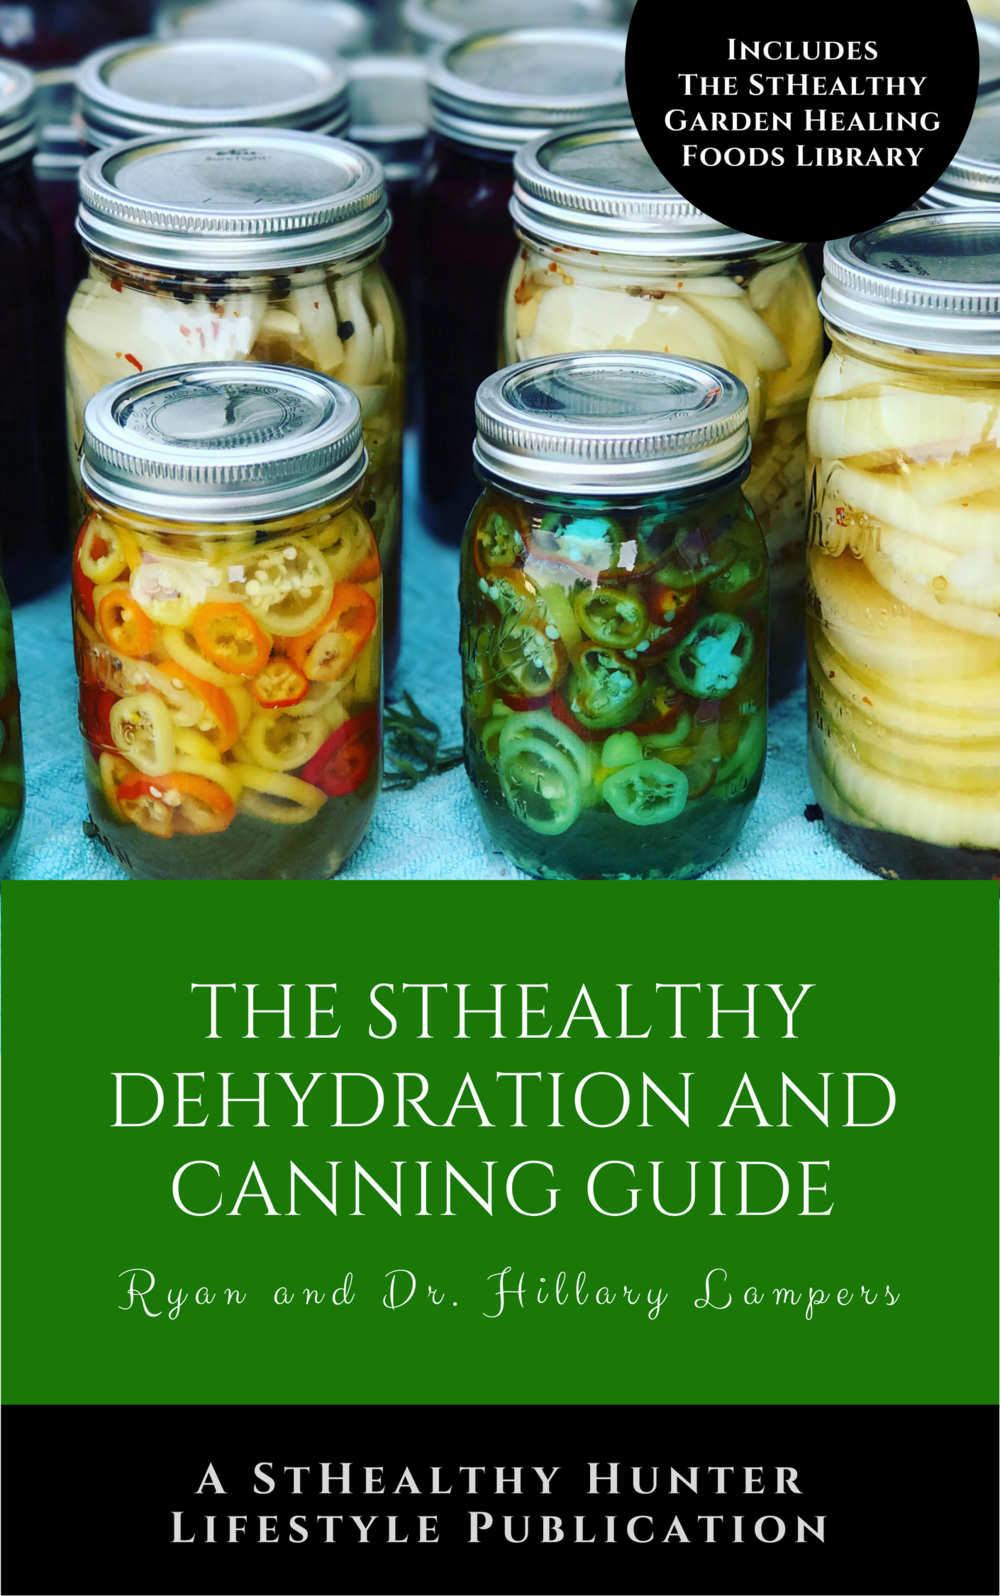 If you love food prep, you need this book.  - The StHealthy Dehydration and Canning Guide